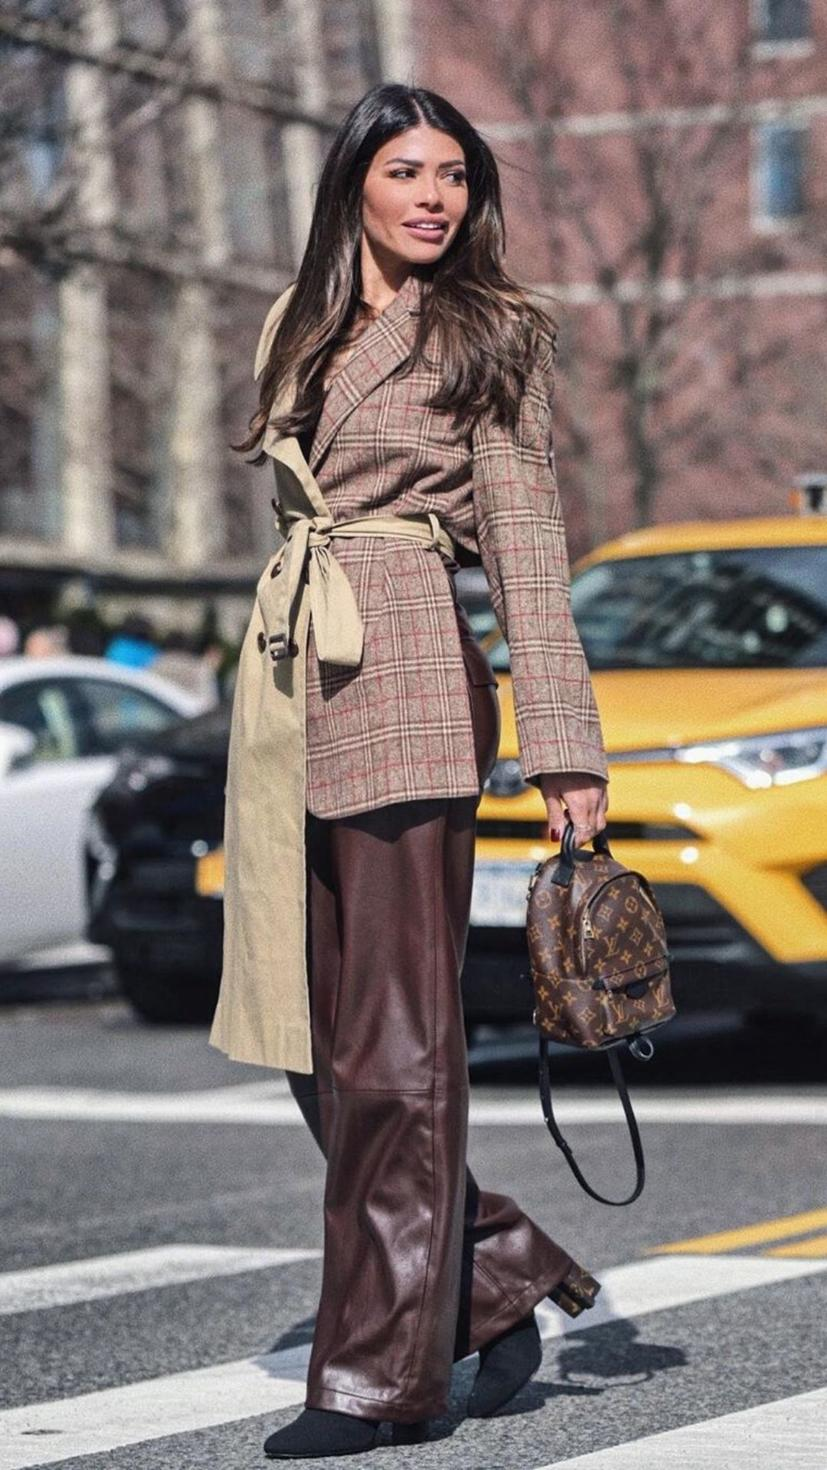 Alanoud Badr at Tresemme Arabia wearing coat from Dina Shaker, bag from Louis Vuitton, and pants from Zara